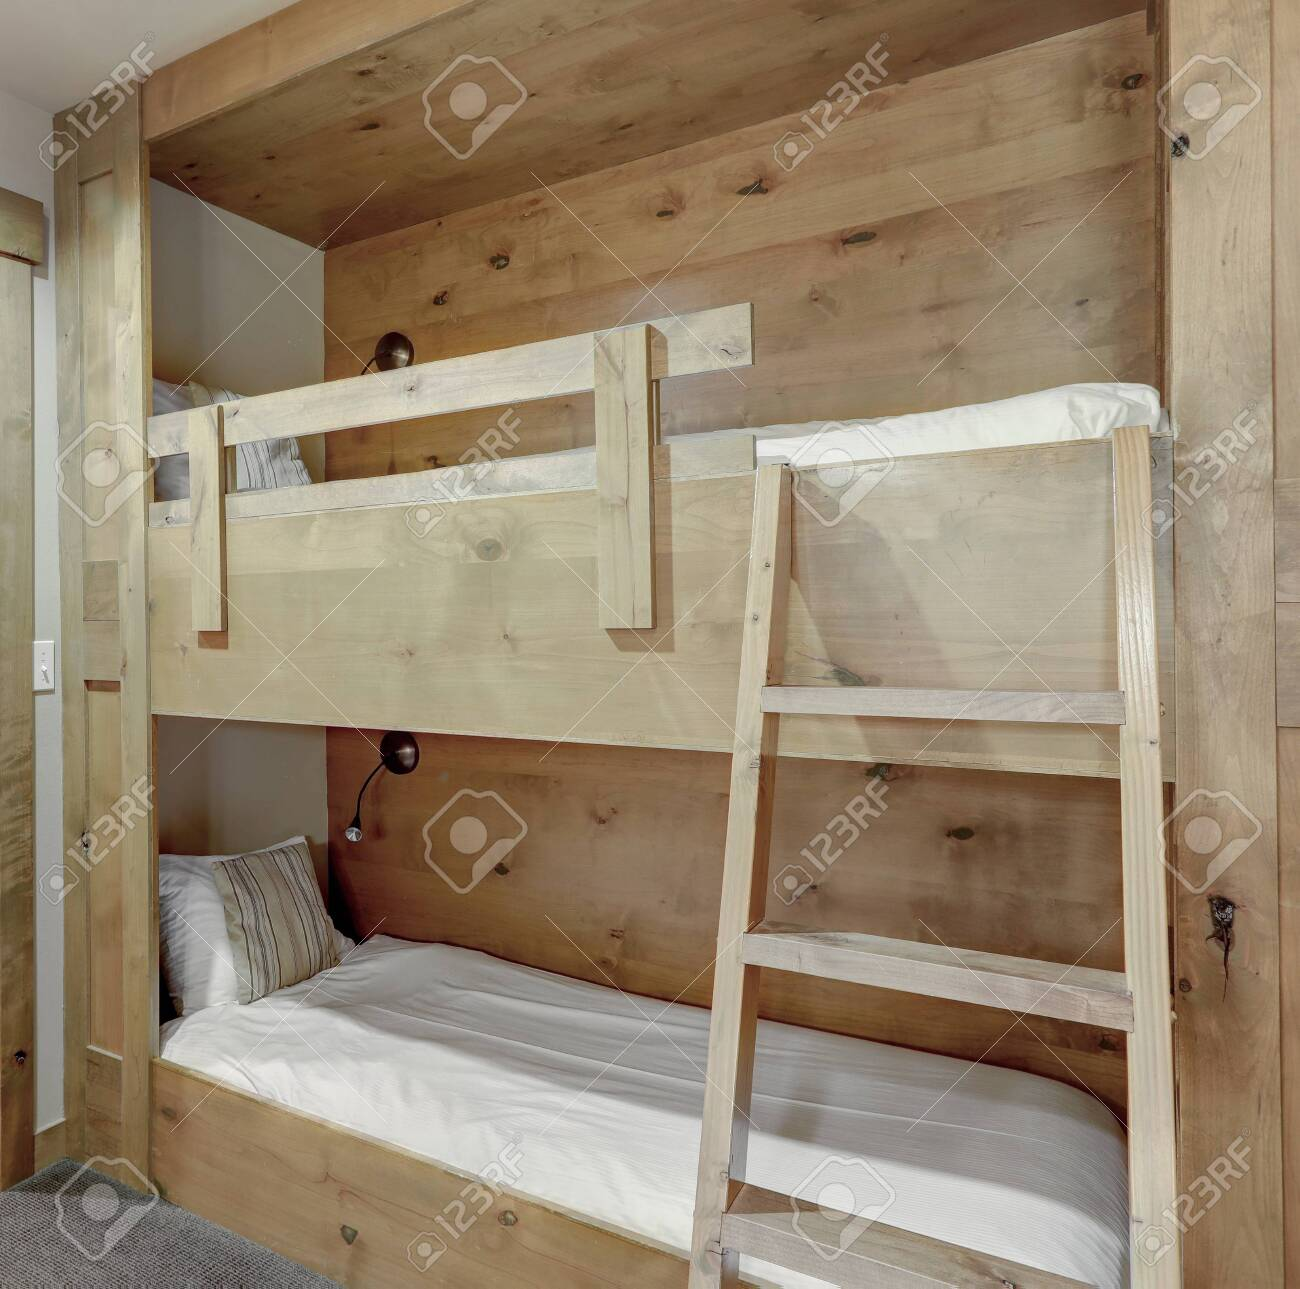 Smart Home With Wooden Bunk Beds In A Hallway For Adults Or Kids Stock Photo Picture And Royalty Free Image Image 142146561